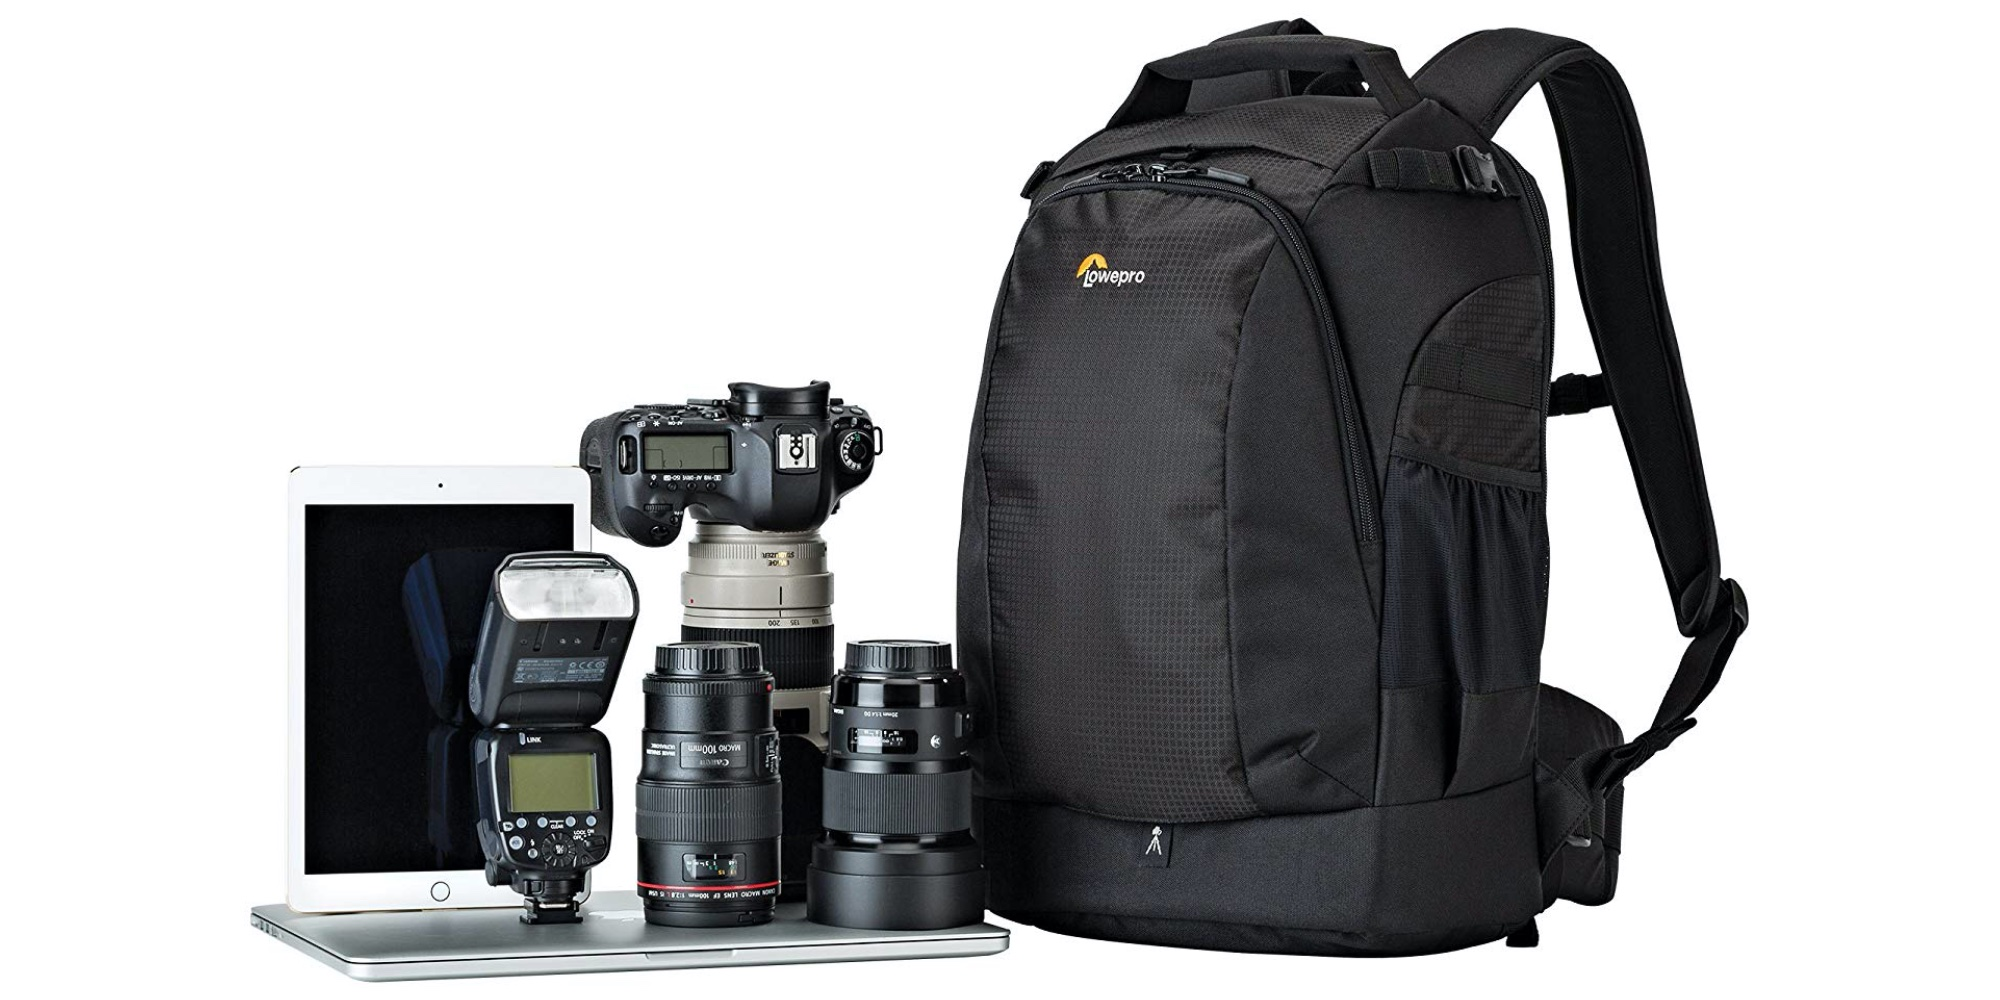 Lowepro's Flipside bag has room for a 15-inch MacBook + DSLR at $120 (20% off) - 9to5Toys